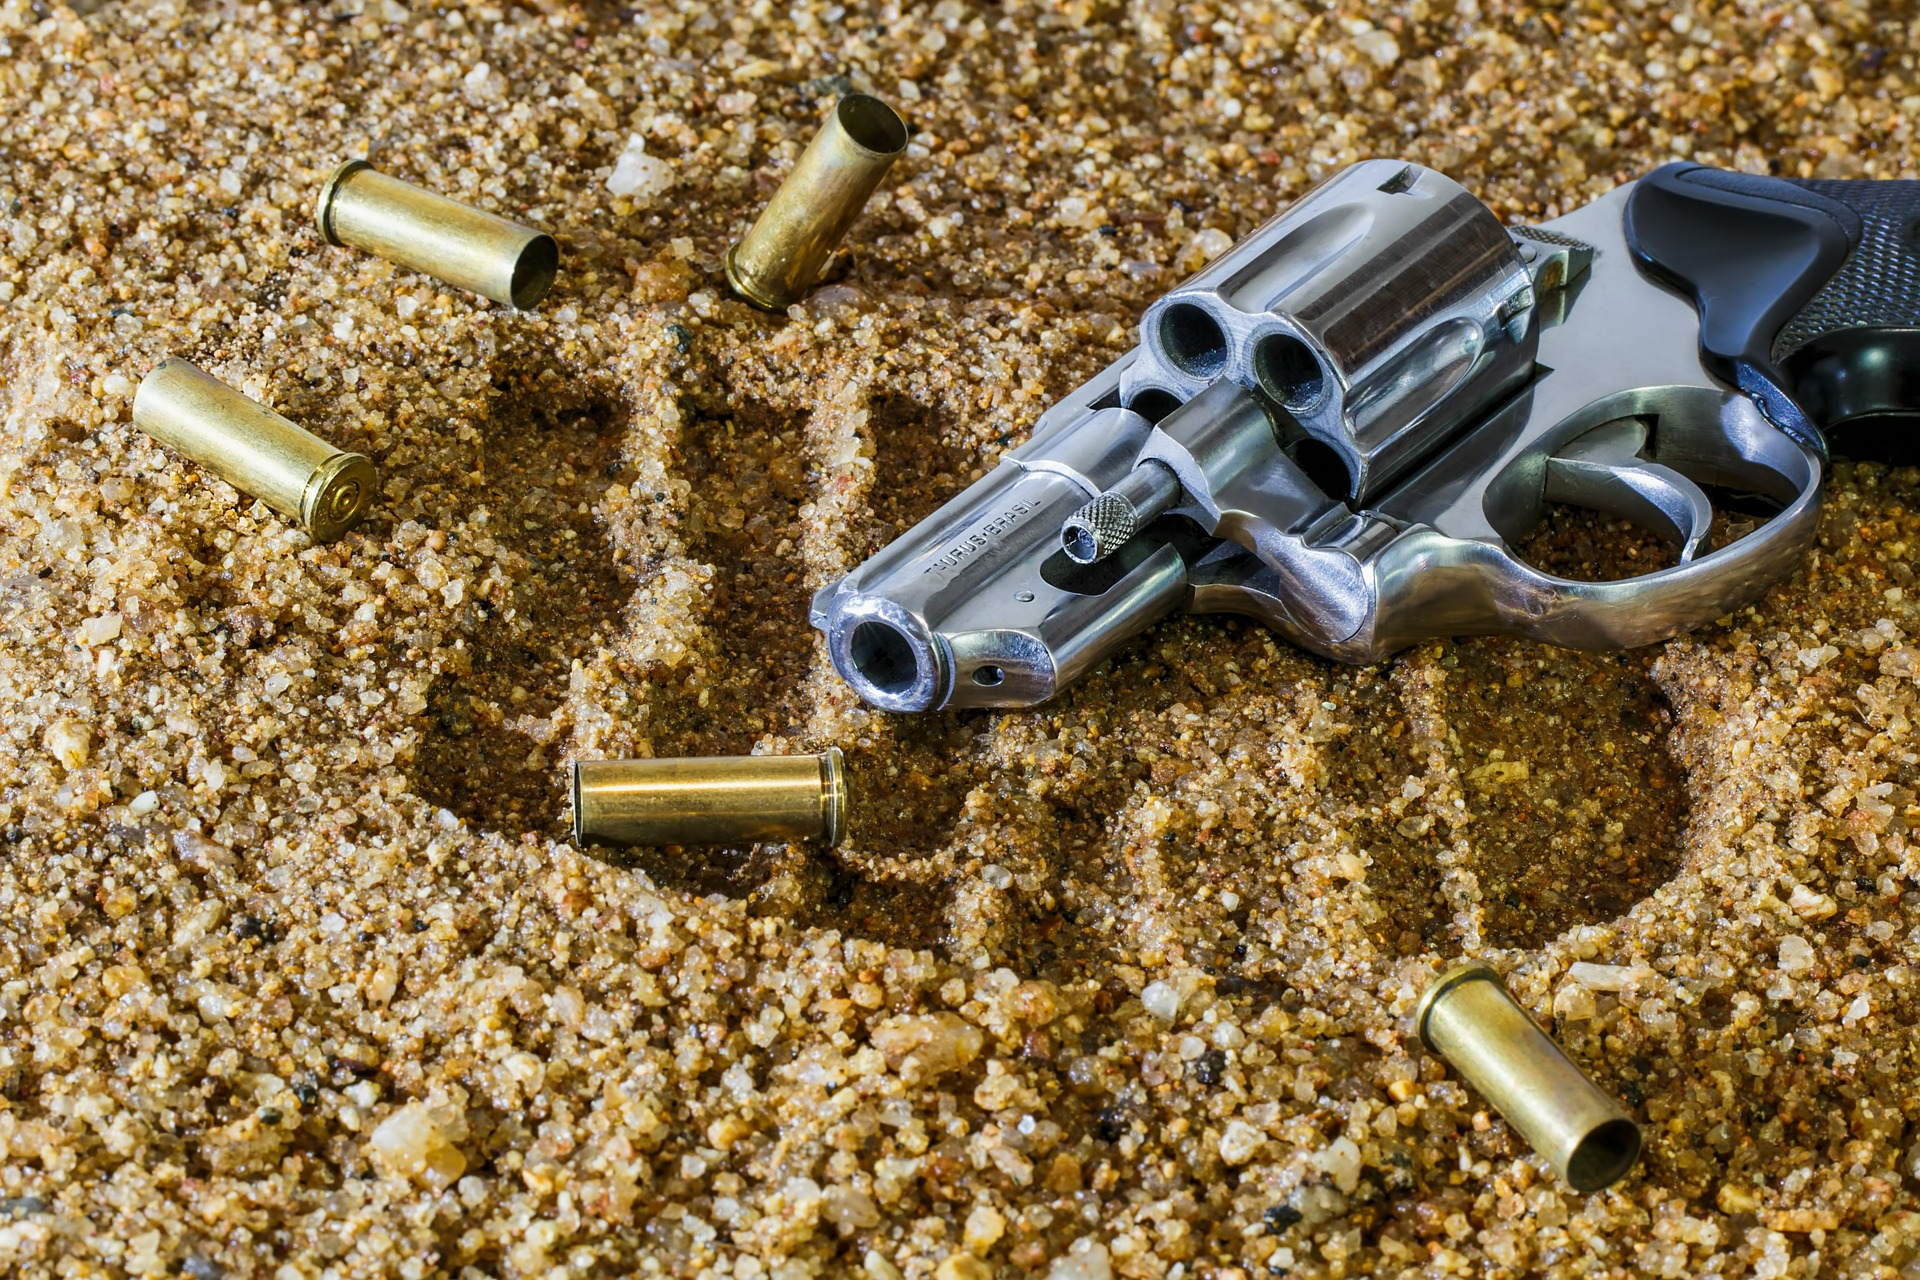 How do we tackle a rising mass shooter problem?